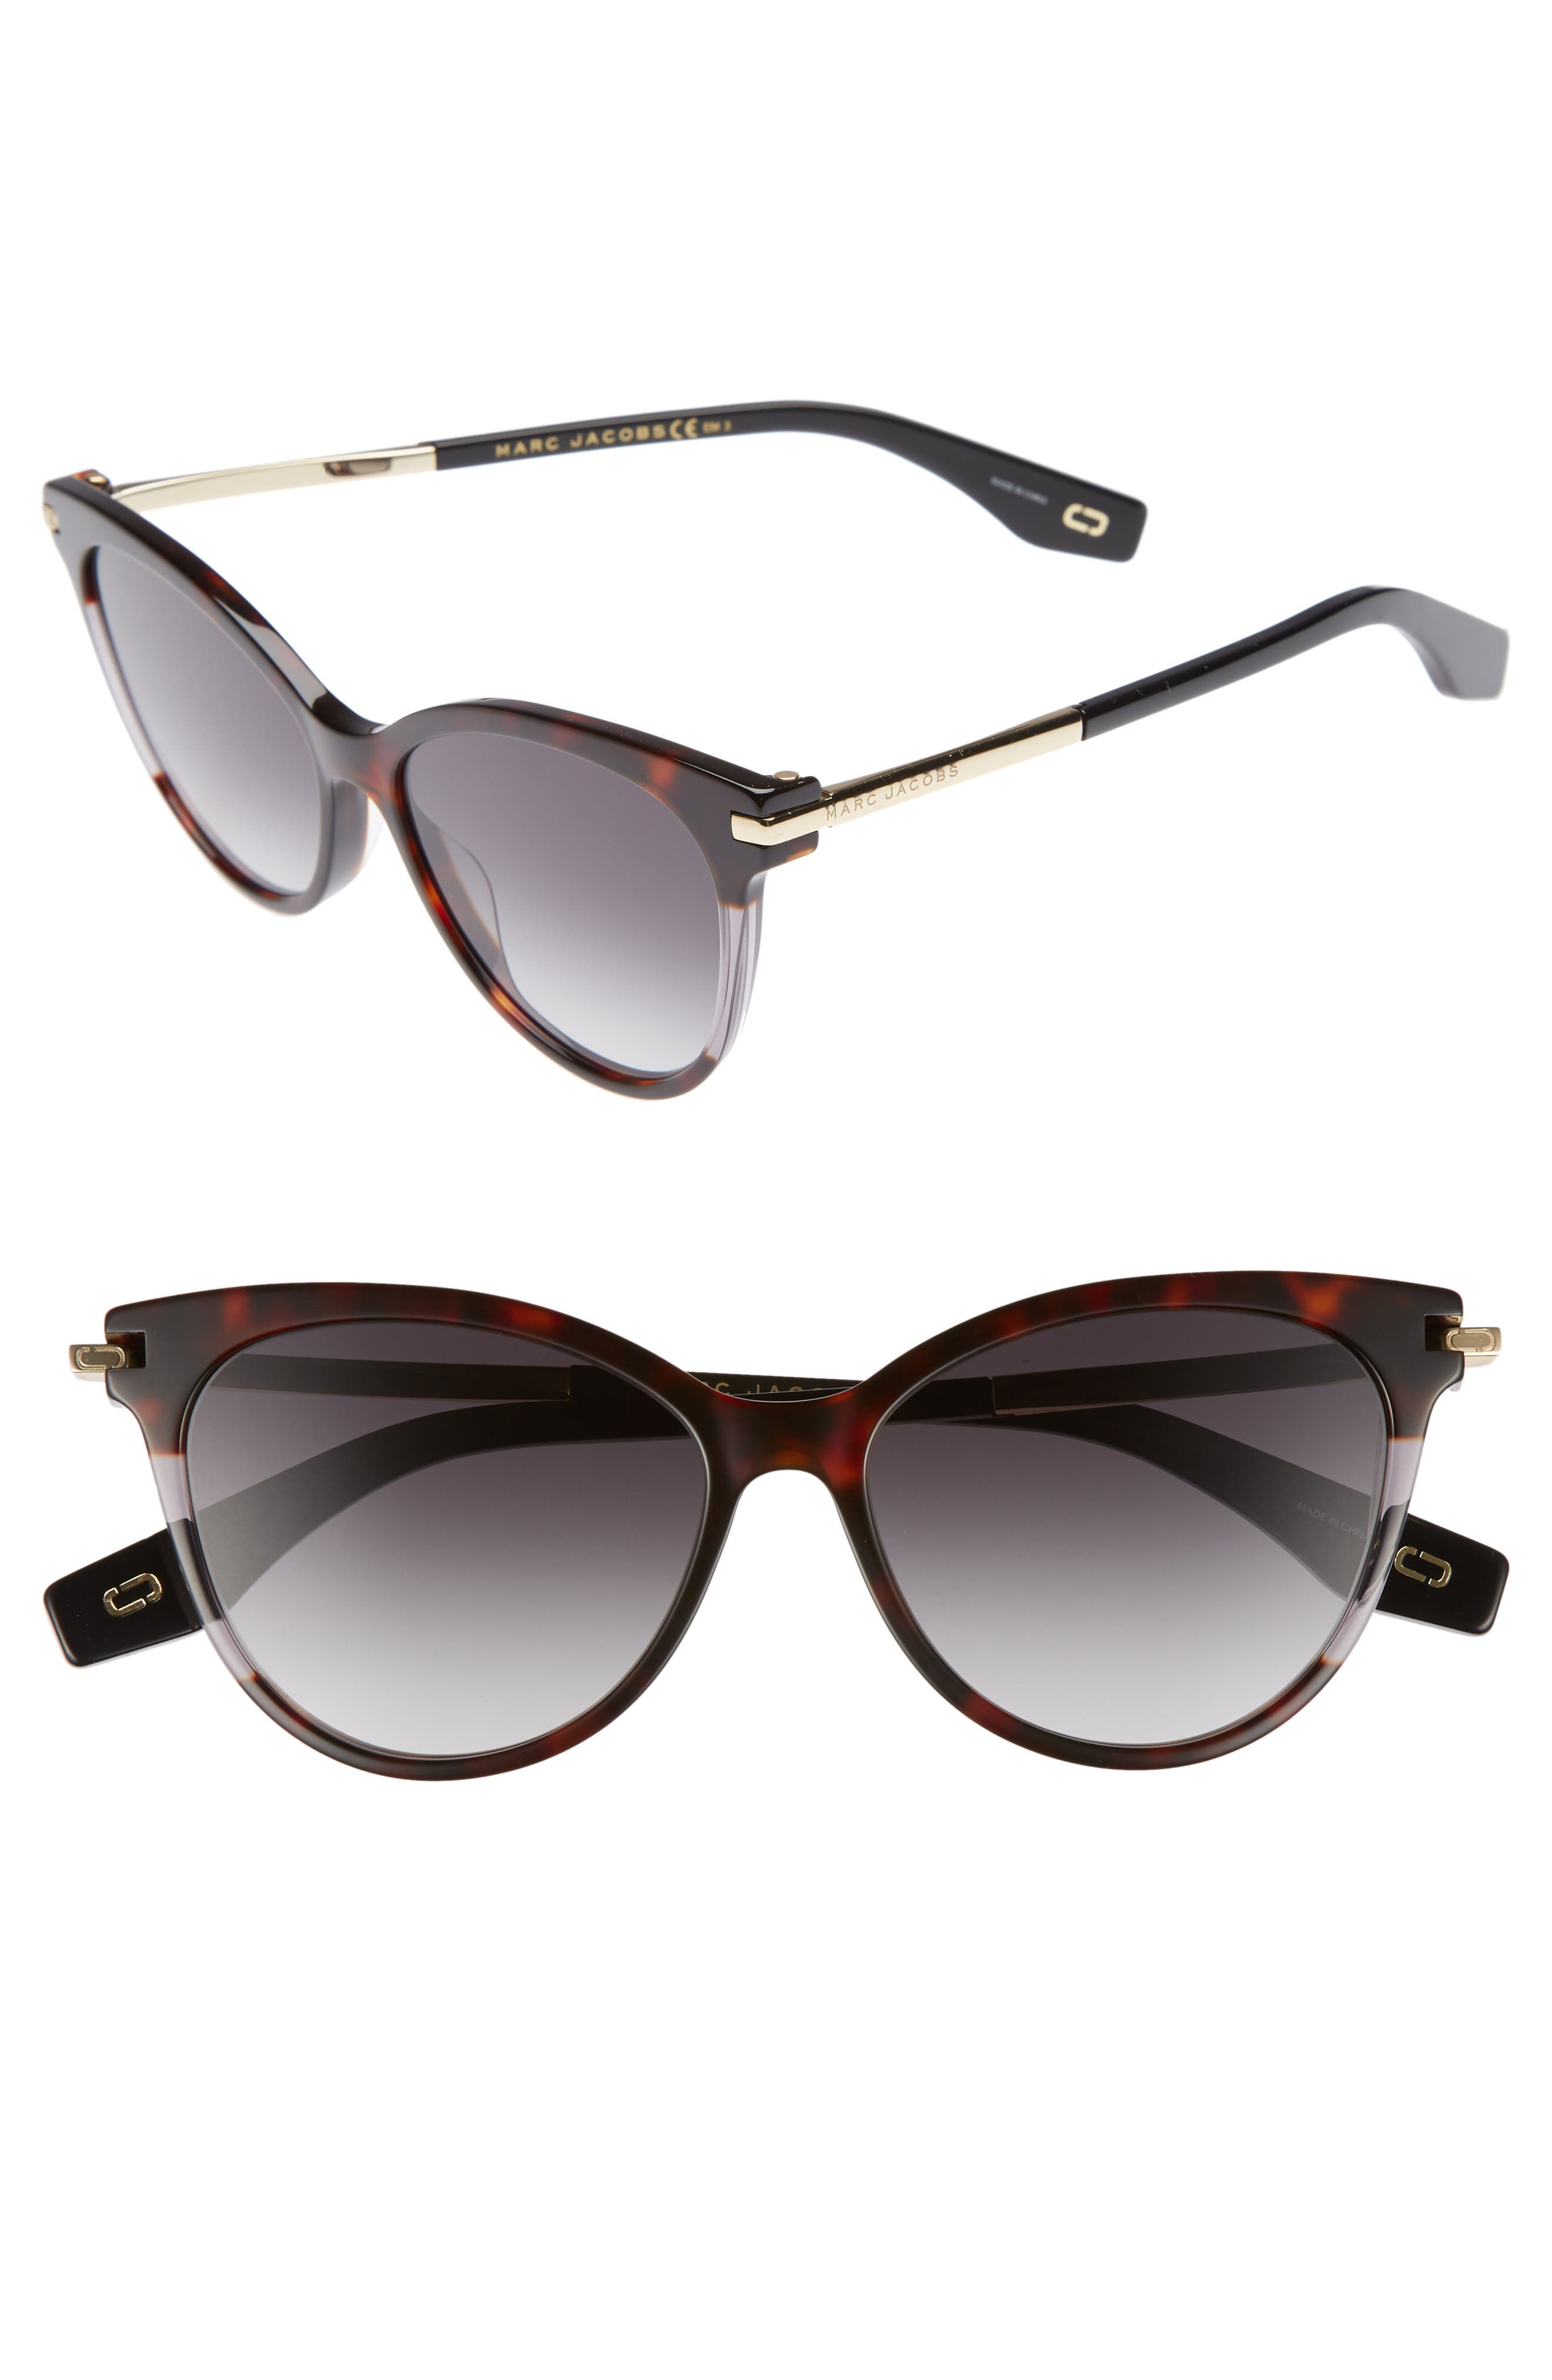 55mm Cat Eye Sunglasses,                         Main,                         color, Dark Havana